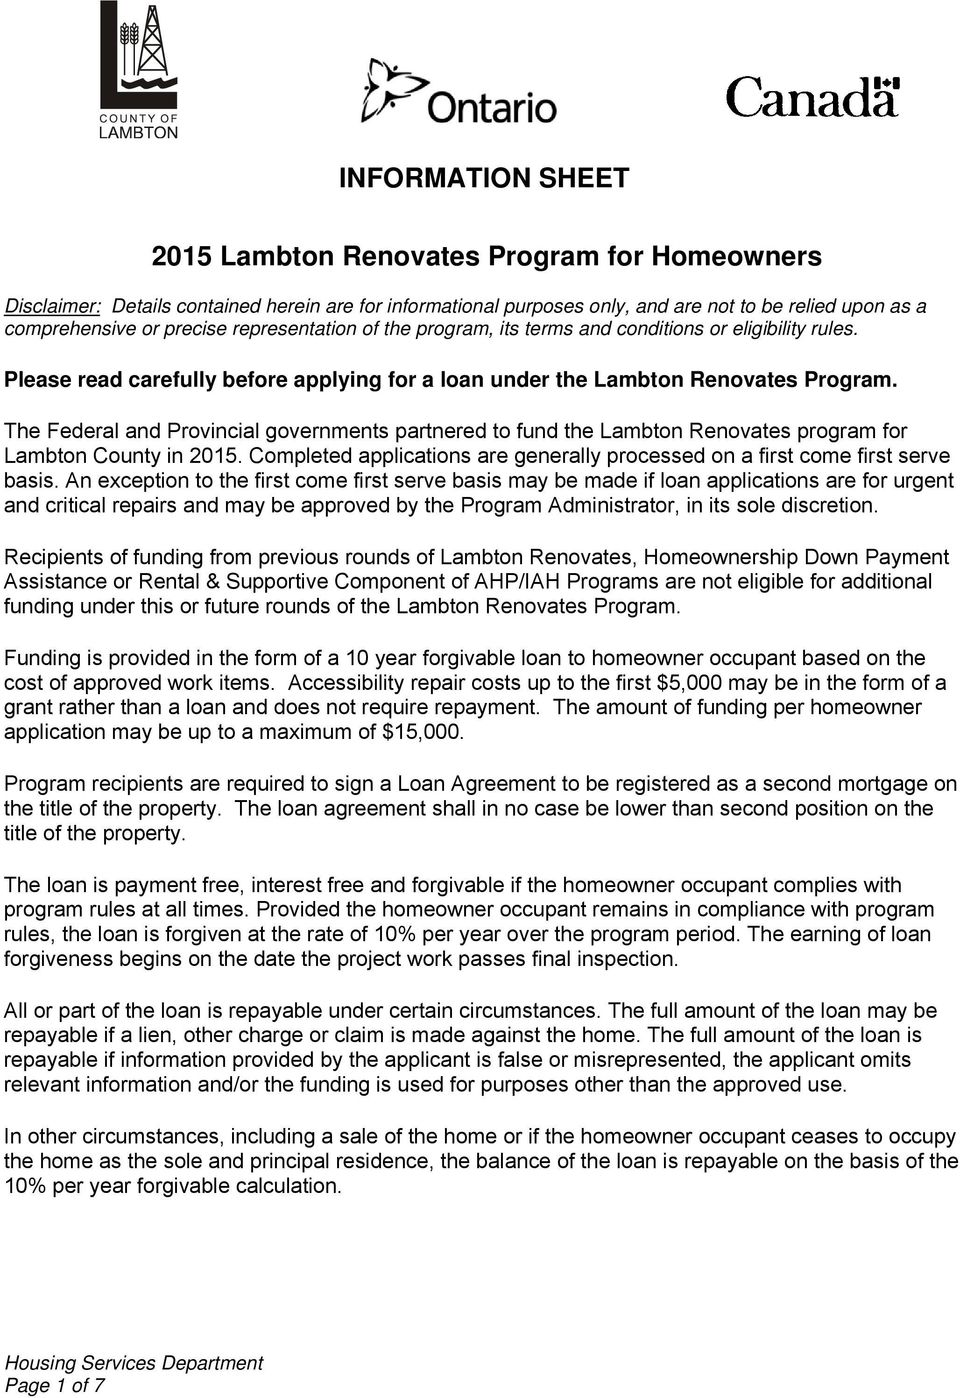 The Federal and Provincial governments partnered to fund the Lambton Renovates program for Lambton County in 2015. Completed applications are generally processed on a first come first serve basis.